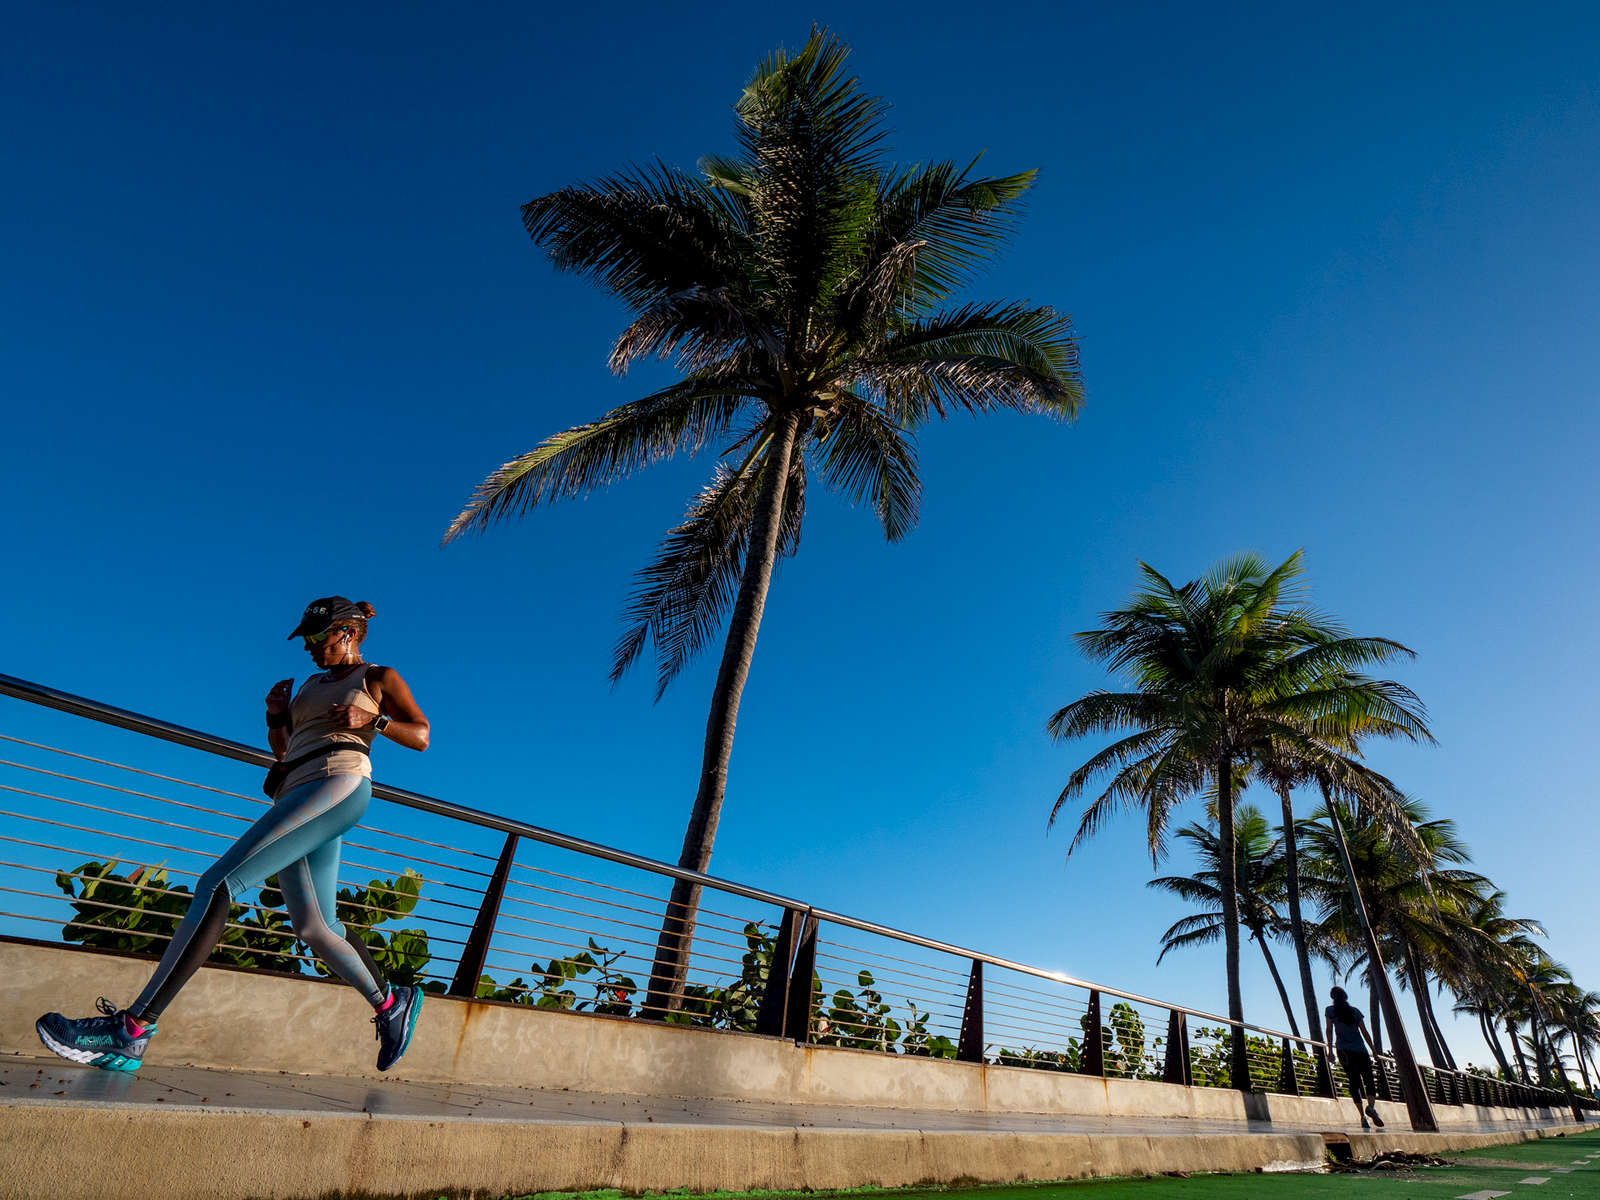 OLD SAN JUAN, PUERTO RICO - NOVEMBER 11:  A runner jogs along the road on November 11, 2018 in Old San Juan, Puerto Rico. The effort continues in Puerto Rico to remain and rebuild more than one year after the Hurricane Maria hit and devastated the island on September 20, 2017. The official number of deaths from the disaster is 2,975.